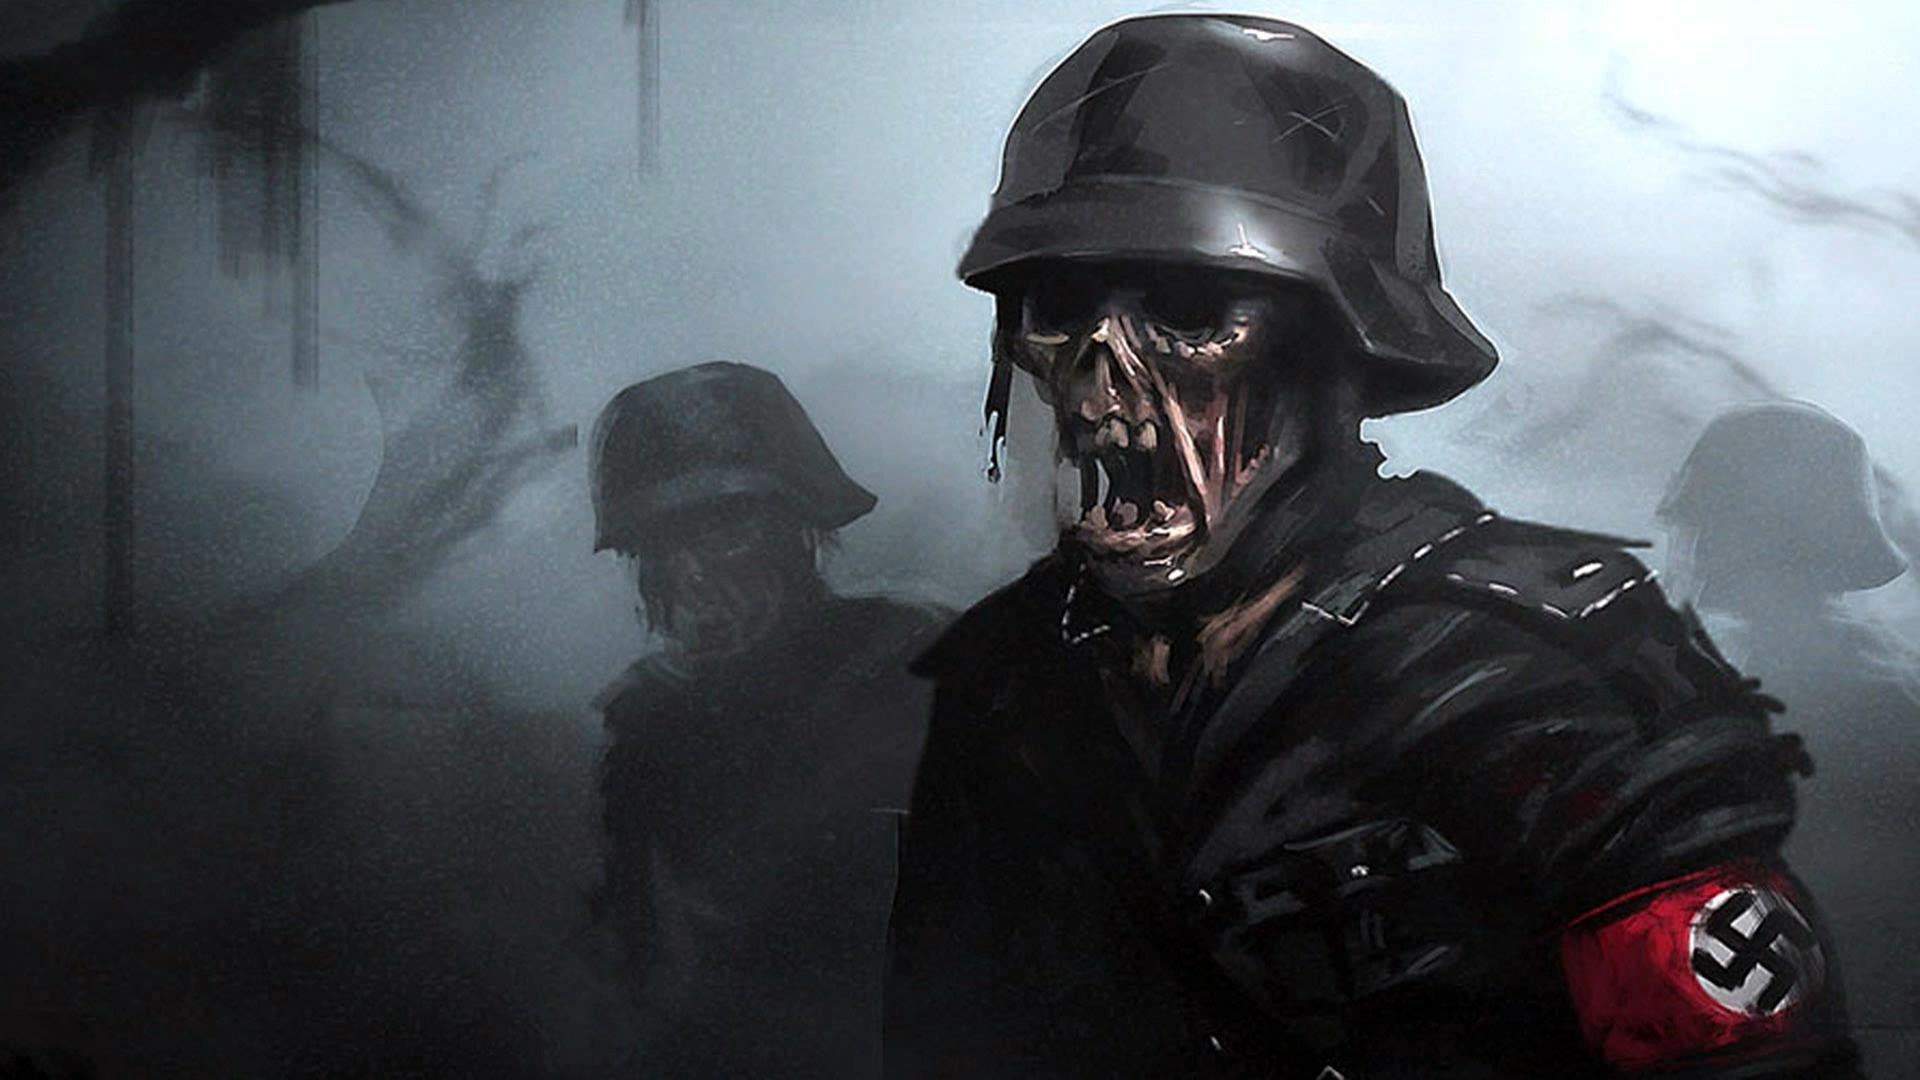 Zombies Wallpaper 1920x1080 nazi zombie deadsnow blood